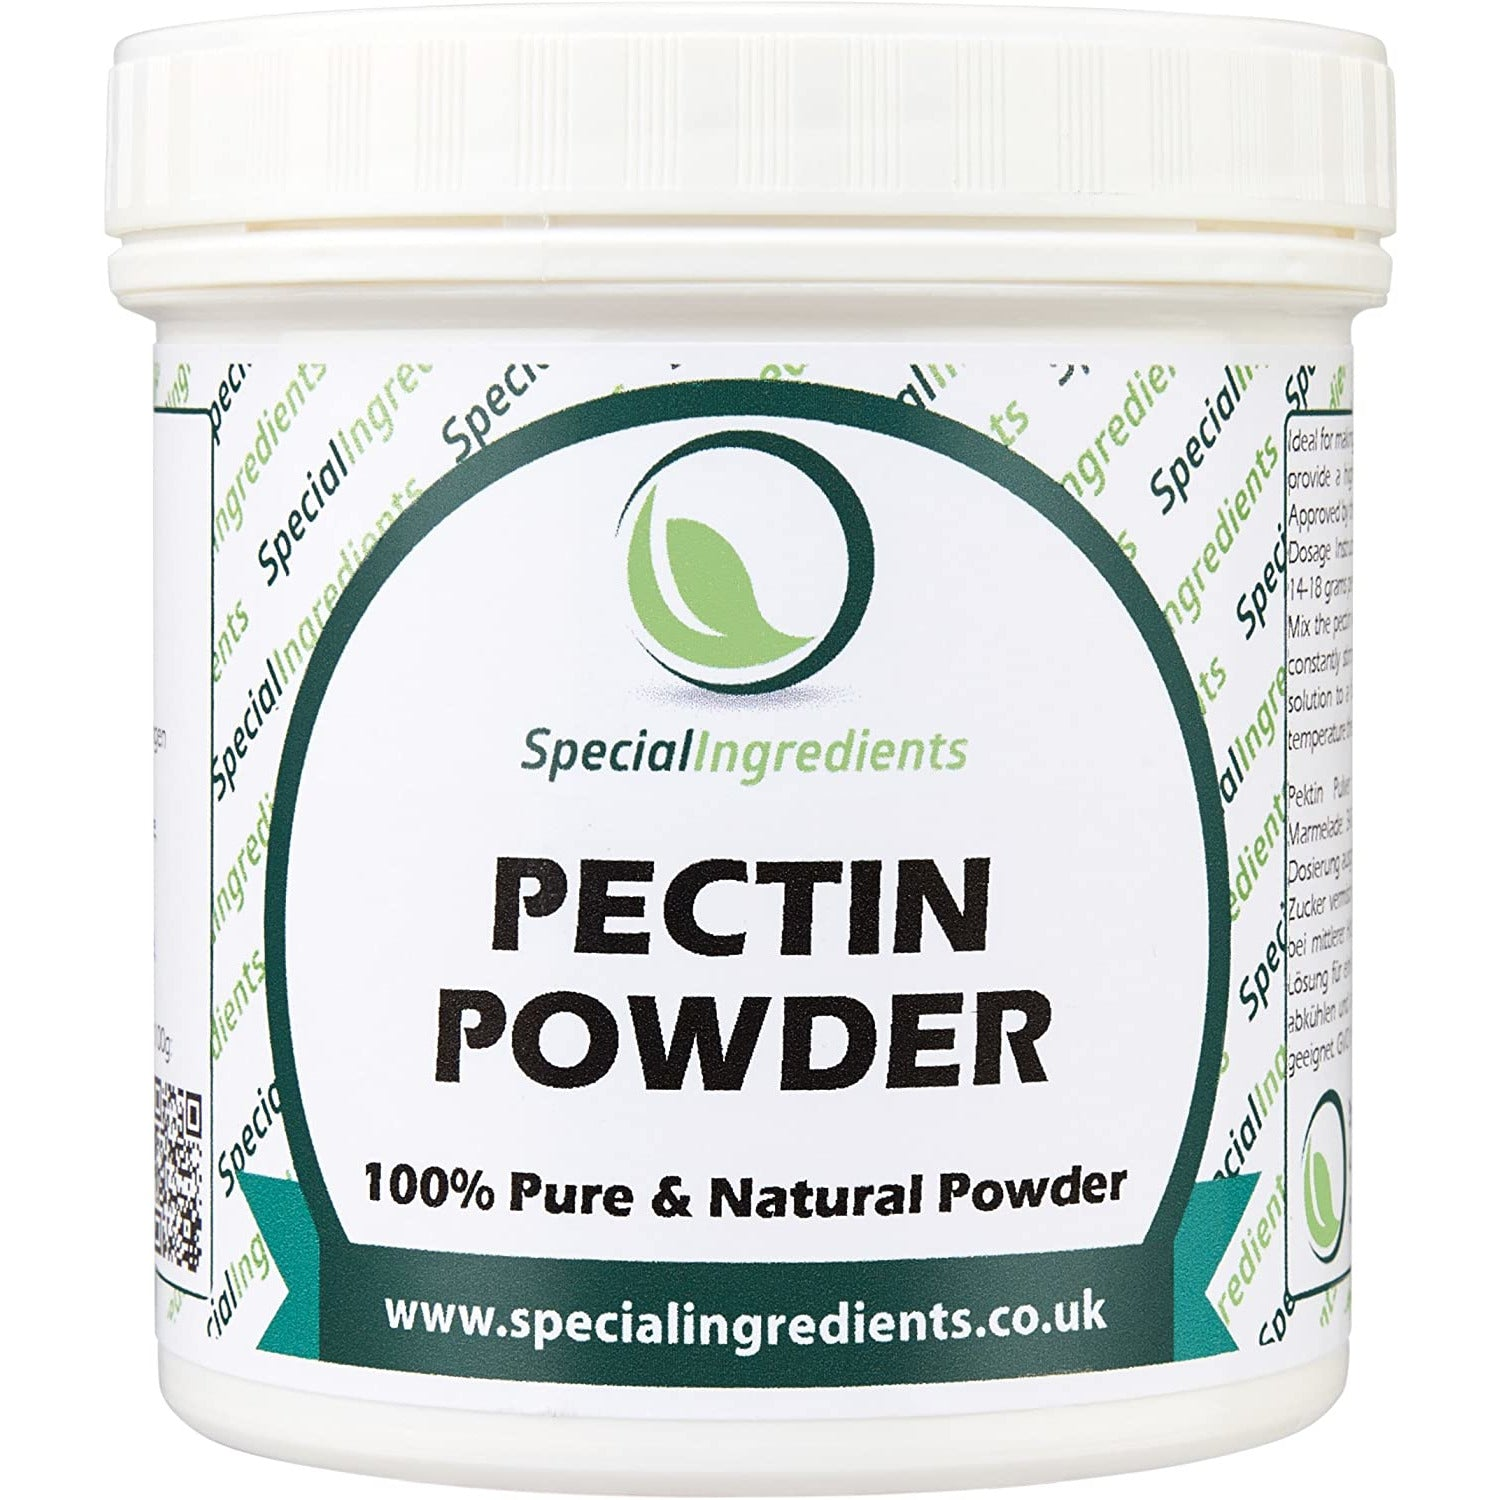 Special Ingredients Pectin Powder 100g Premium Quality Ideal For Making Jam, Marmalades, Chutneys, Fruit Jellies & Cake Fillings.